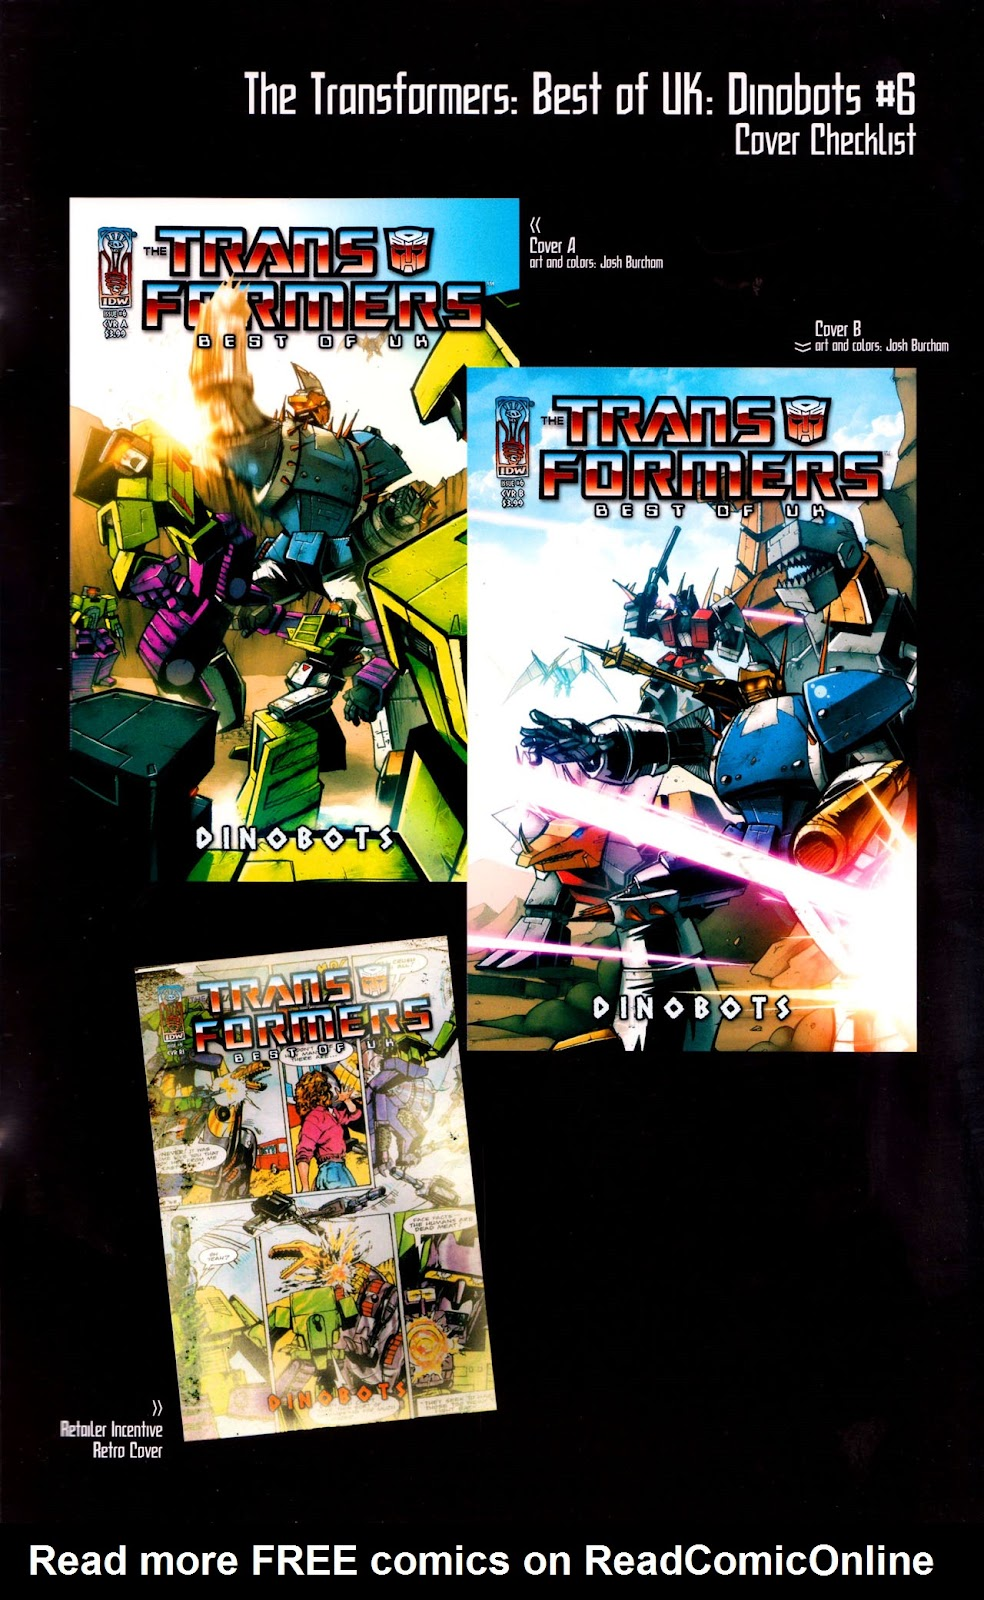 Read online The Transformers: Best of UK: Dinobots comic -  Issue #6 - 36